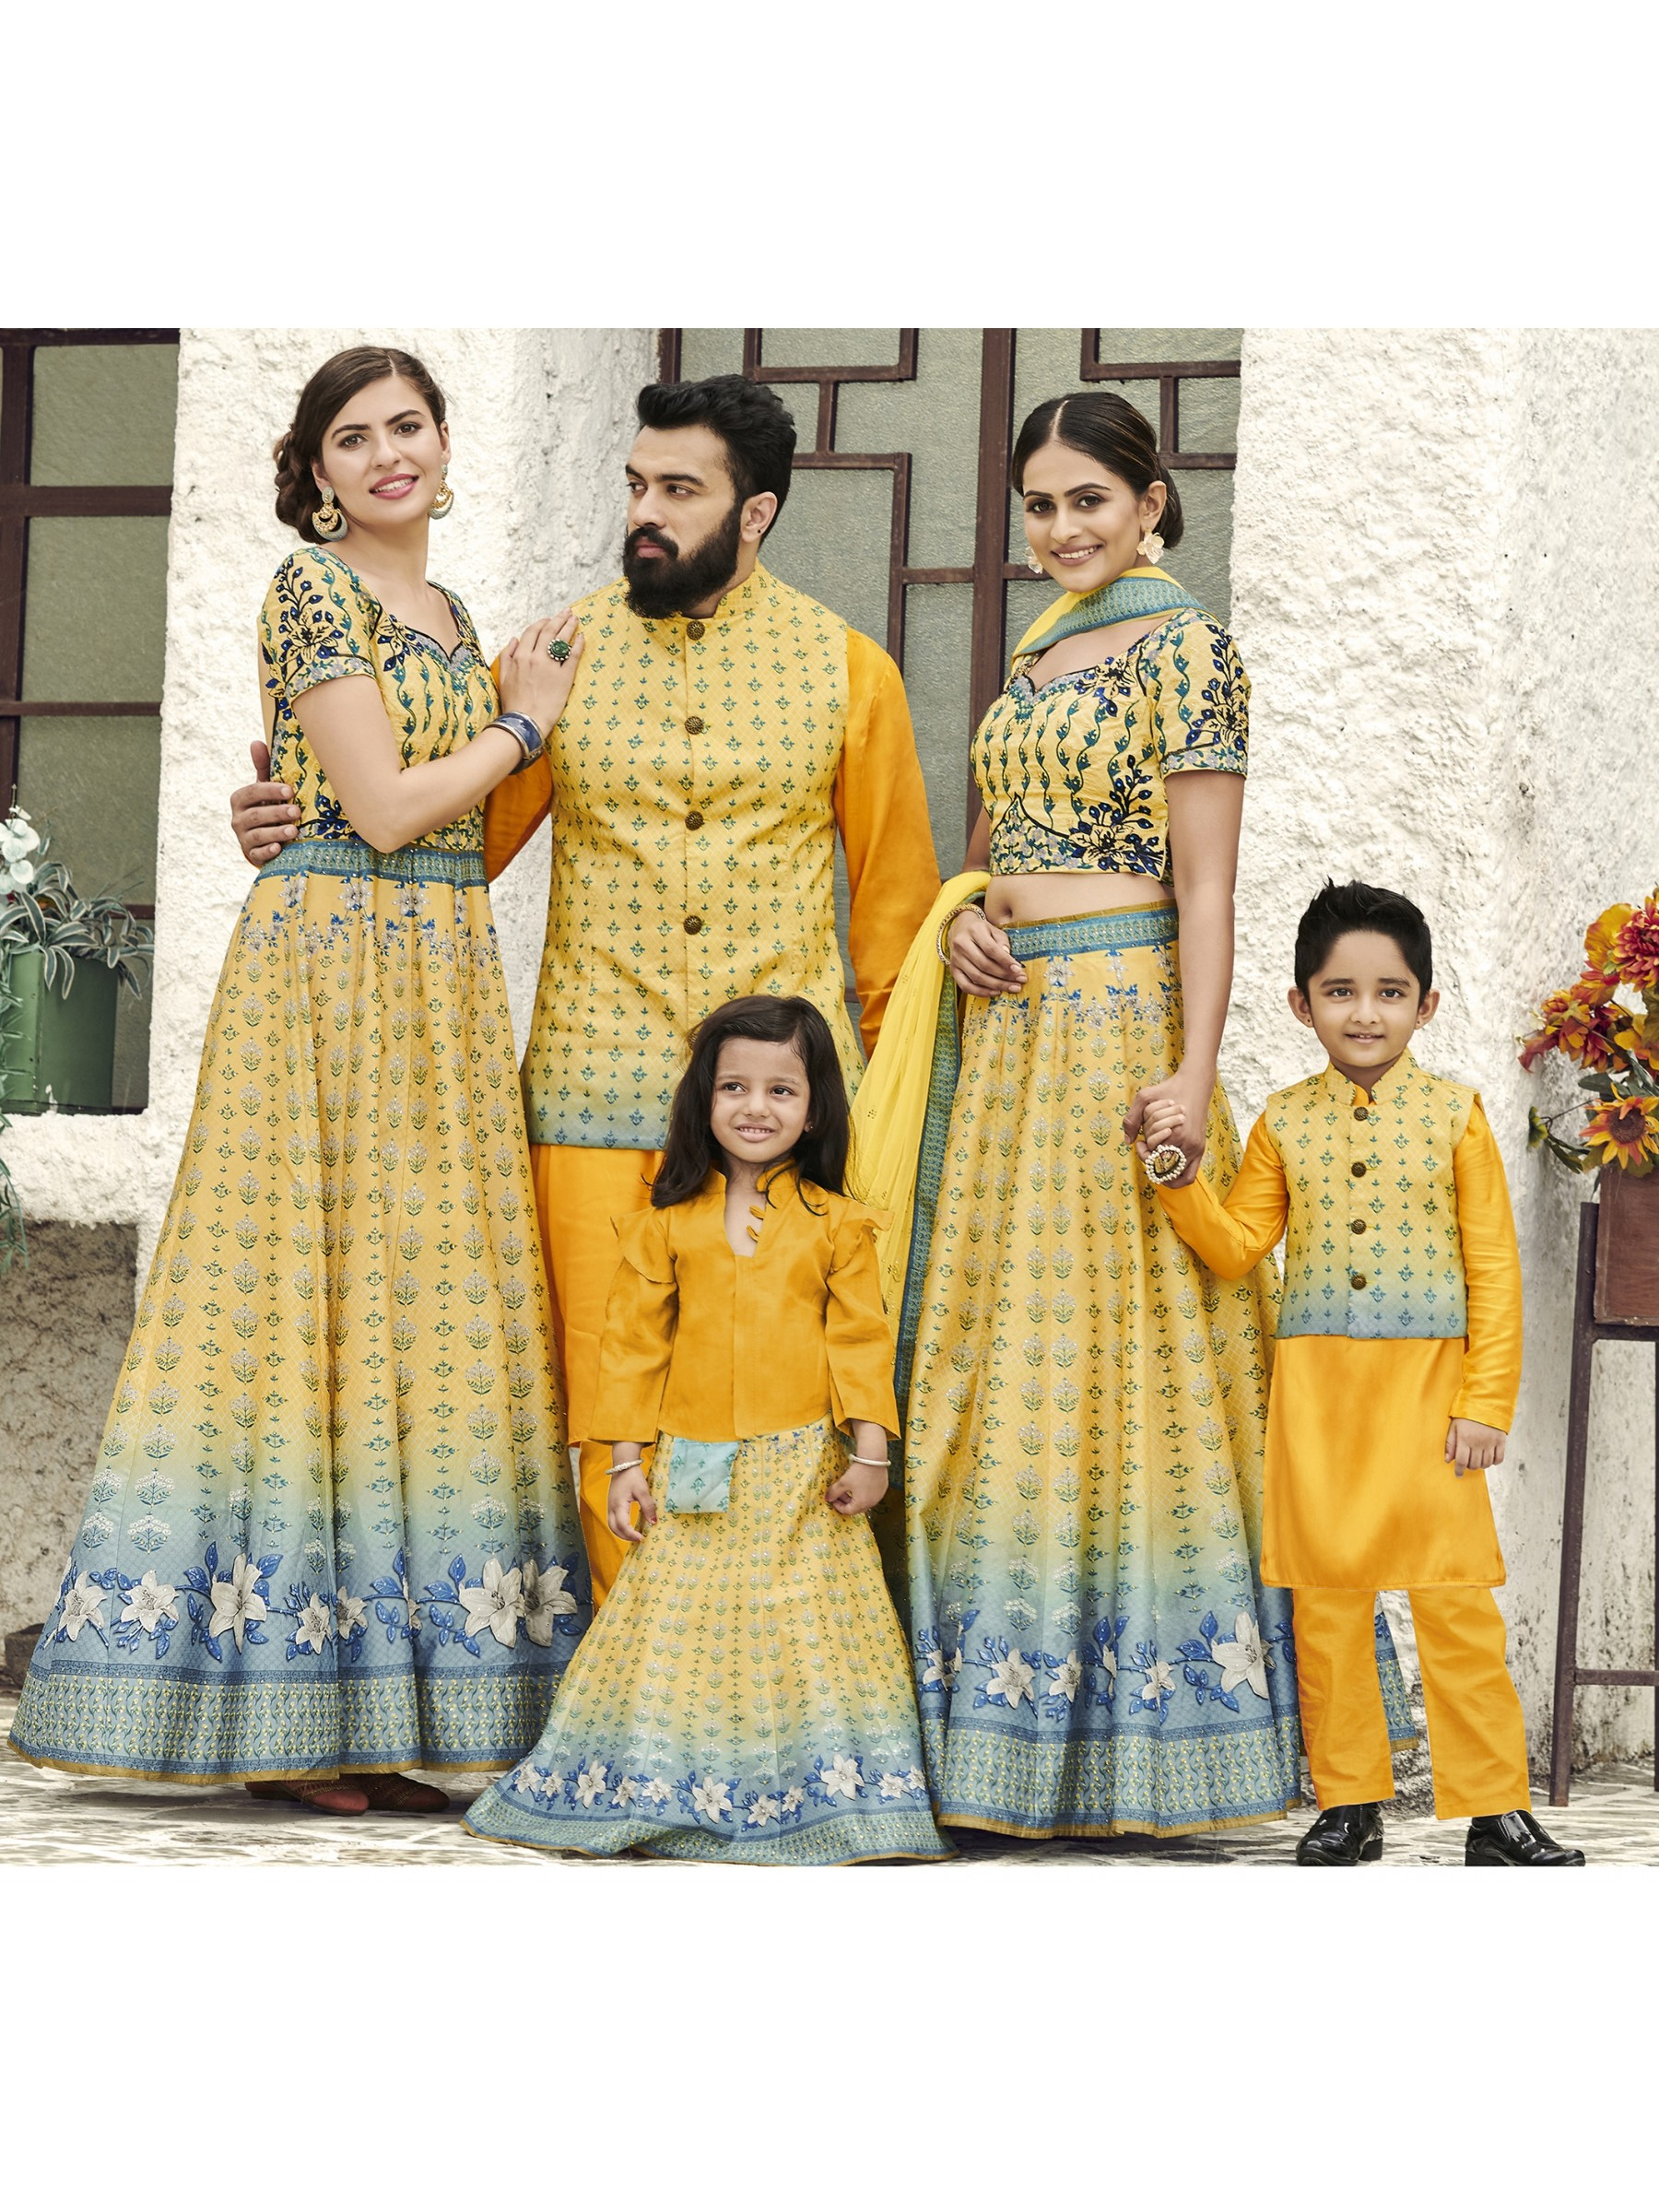 Pure Heritage Silk Wedding Wear Full Family Combo in Yellow color Digital Print Work & Stone Work